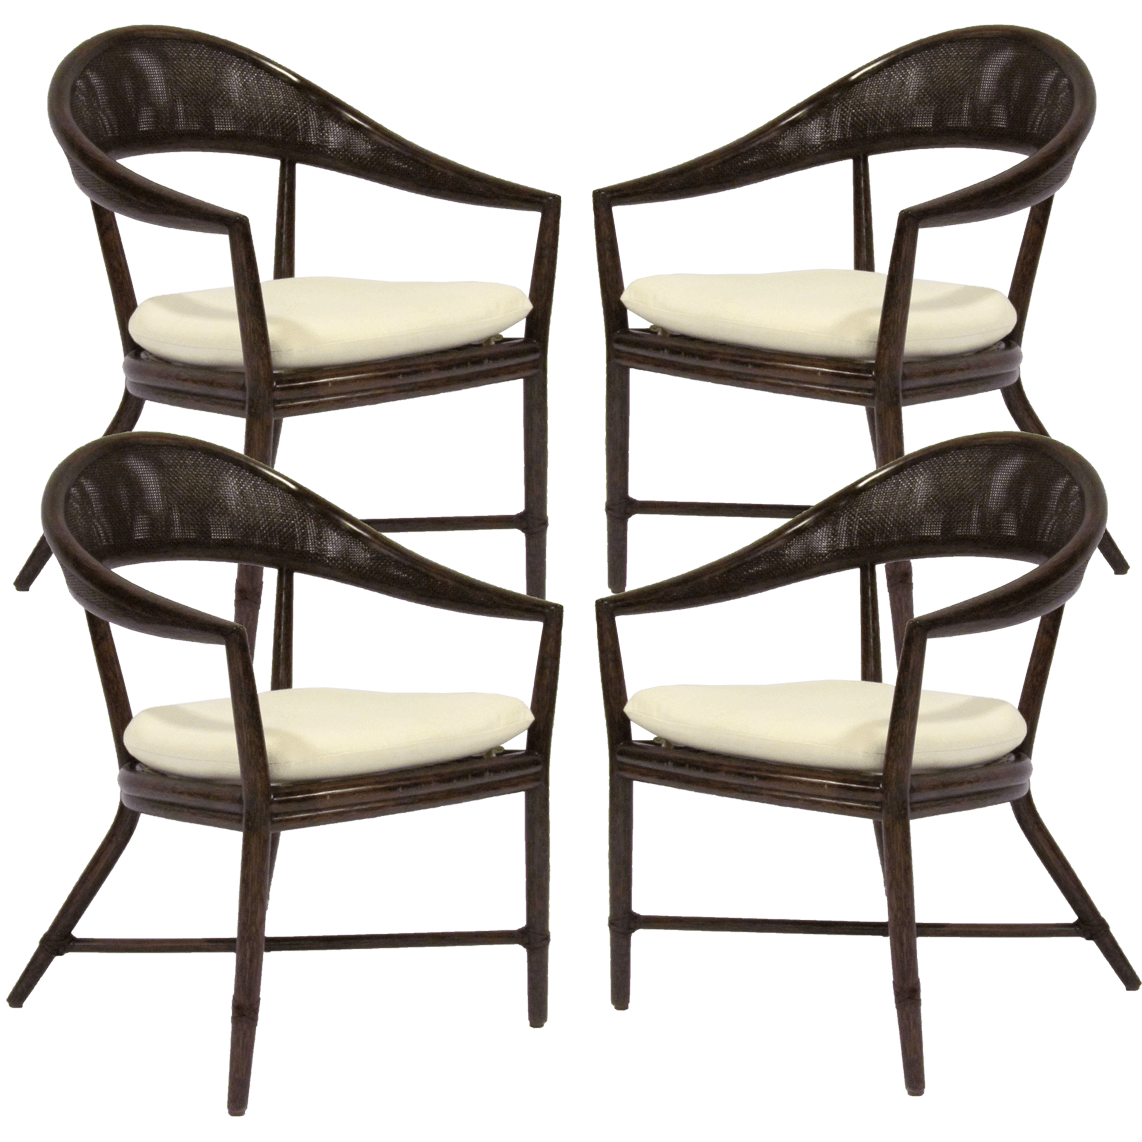 McGuire Mallorca Chair Set of 4